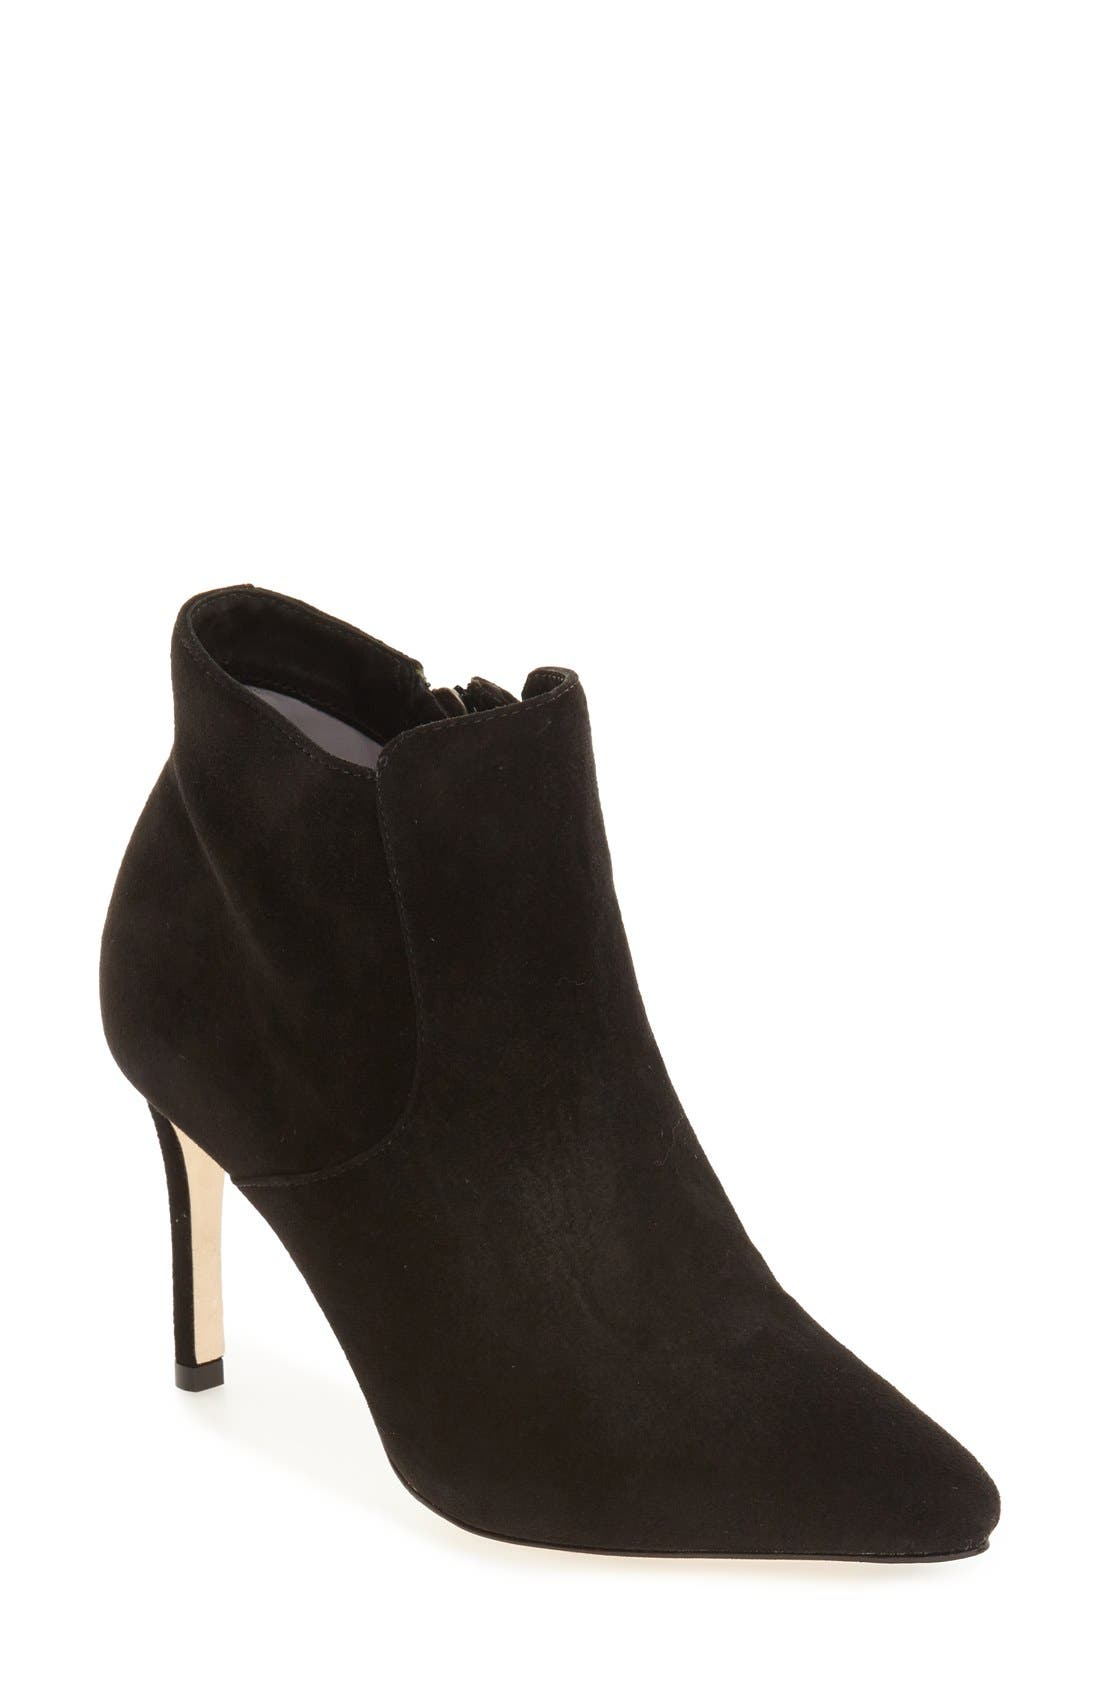 Main Image - Johnston & Murphy 'Valerie' Pointy Toe Bootie (Women)